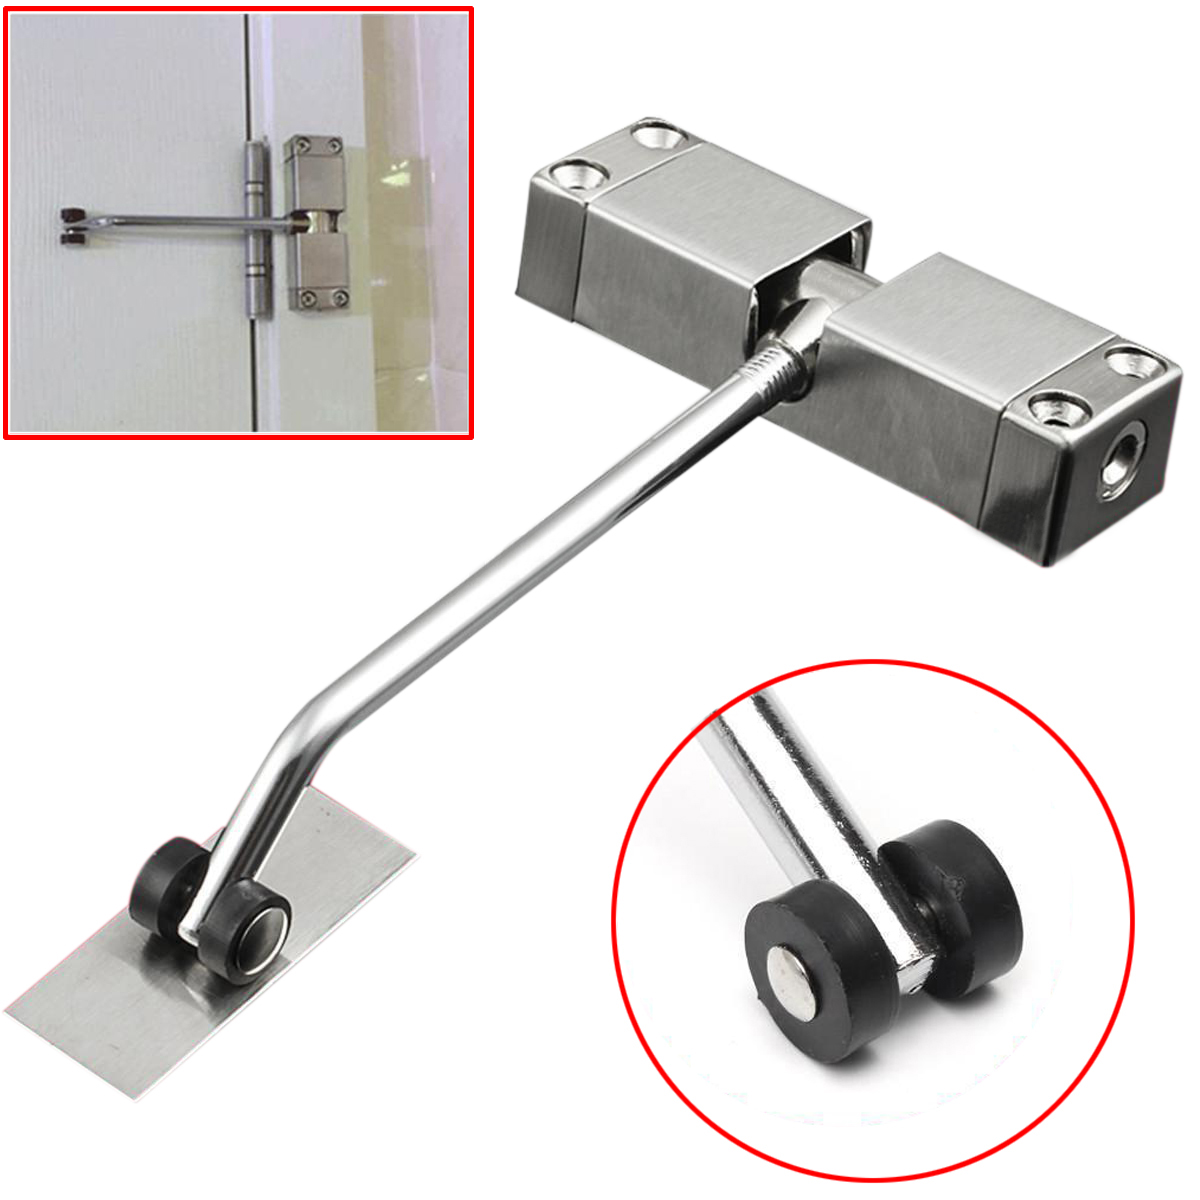 Durable Adjustable Automatic Door Closer Stainless Steel Surface Mounted Household Spring Auto Door Closer Hardware Tool 1pc automatic mounted spring door closer stainless steel adjustable surface door closer 160x96x20mm page 6